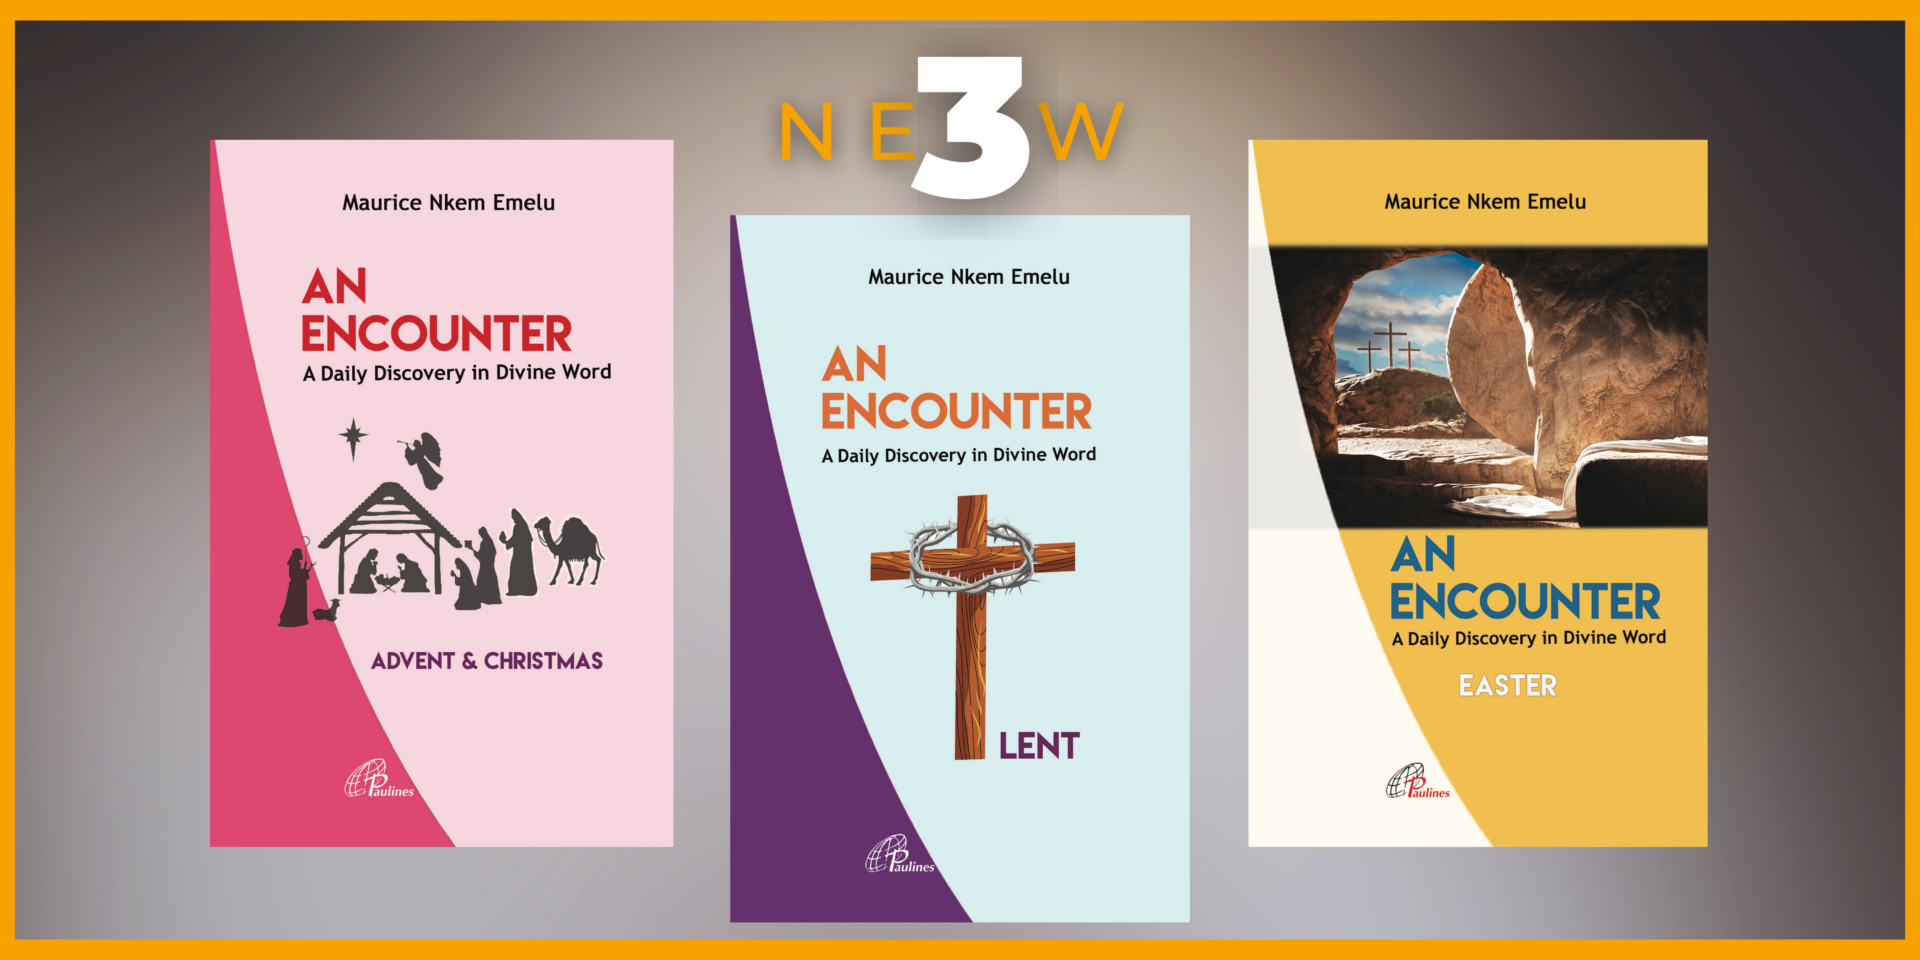 Paulines Publications Africa Banner for Maurice Emelu's Books